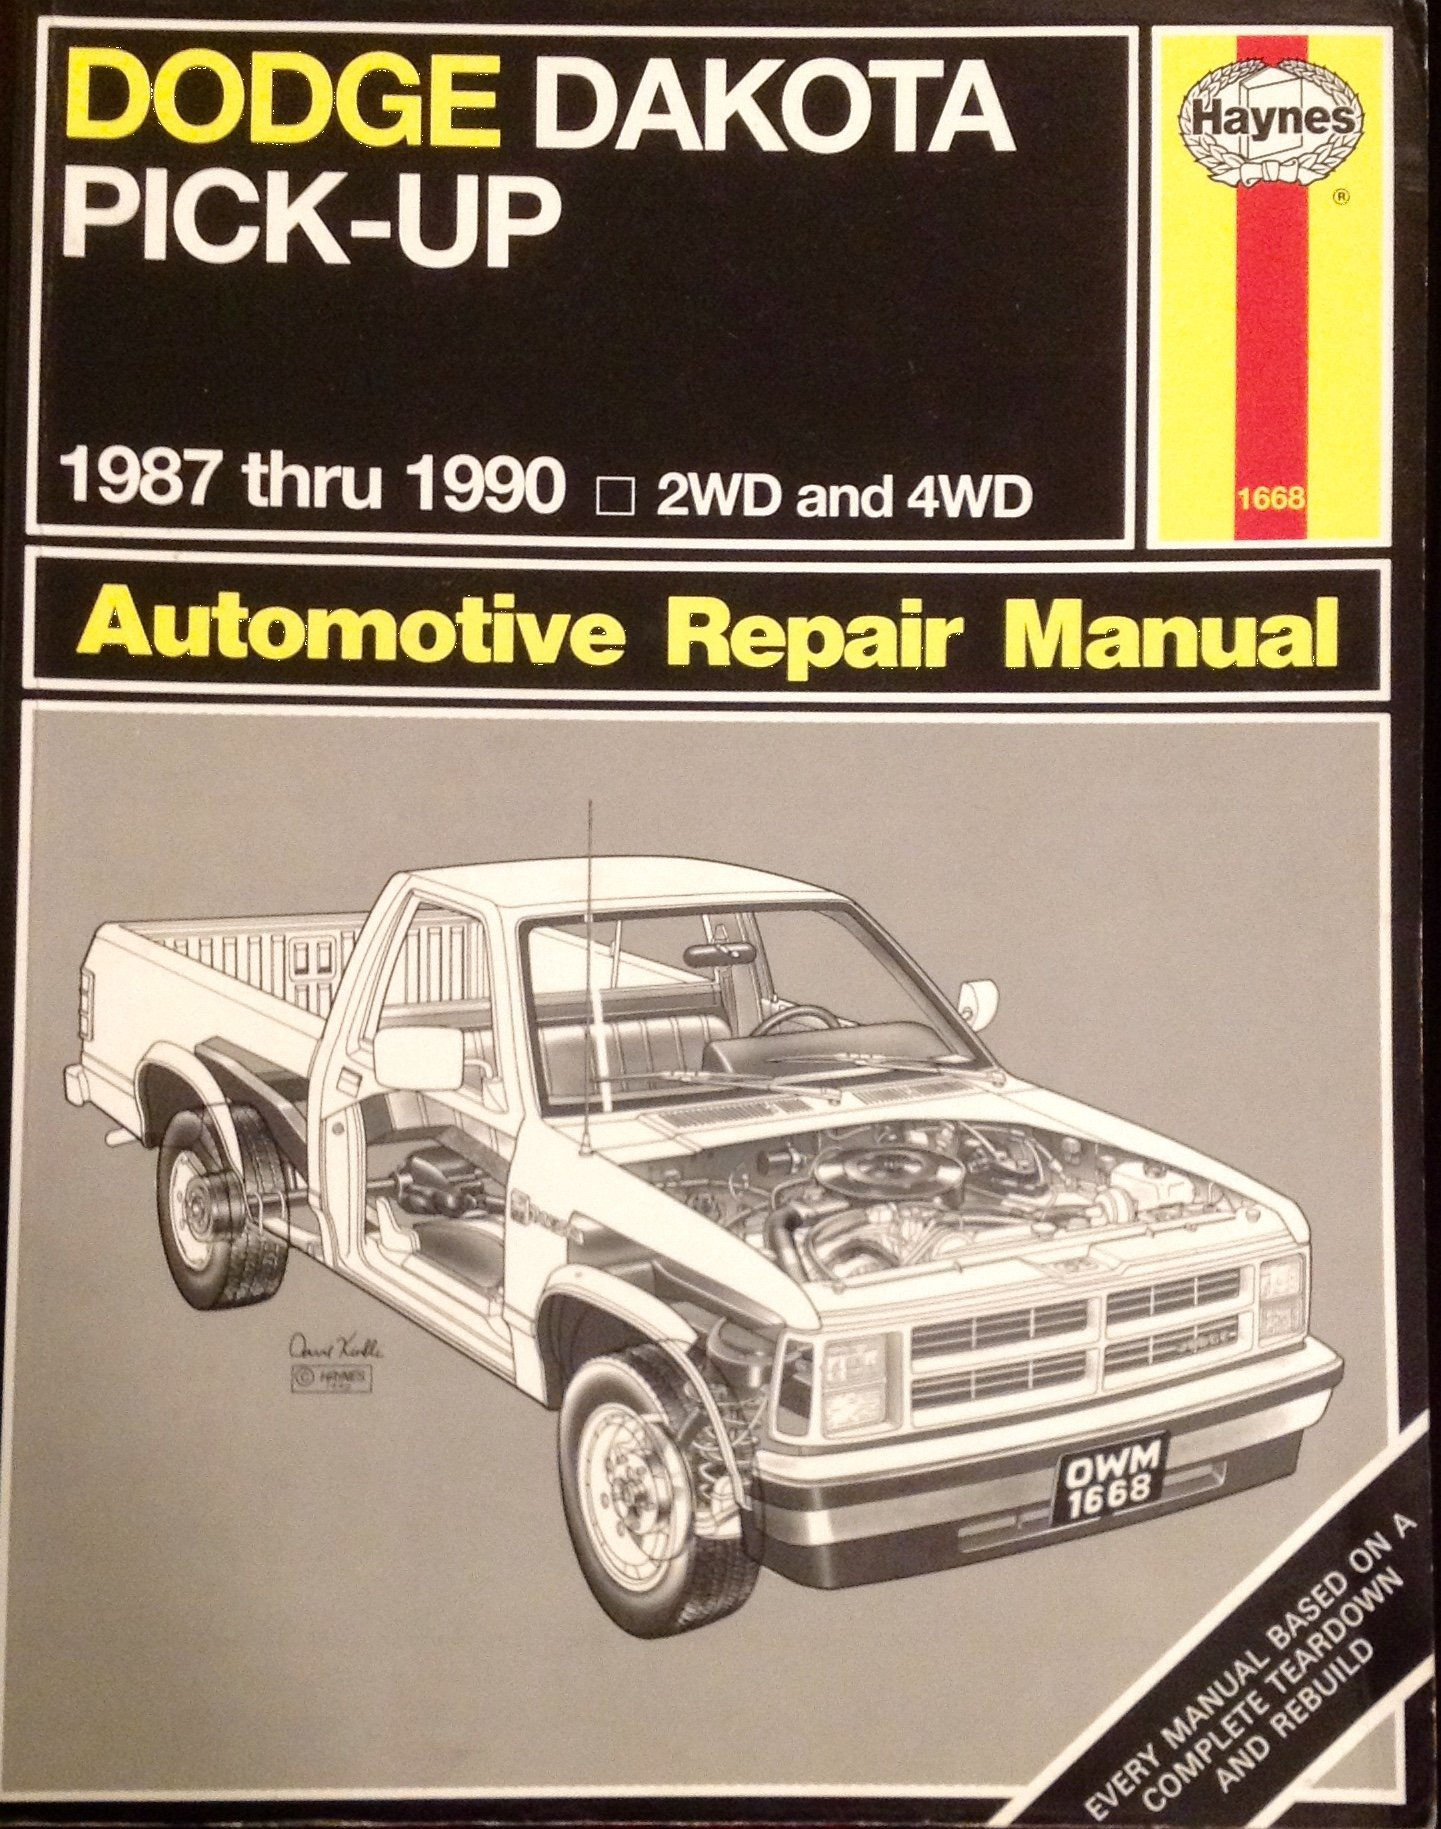 Dodge Dakota Pick-up 1987 thru 1990 2WD and 4WD Automotive Repair Manual:  Brian Styve, J. H. Haynes: 9781850106685: Amazon.com: Books